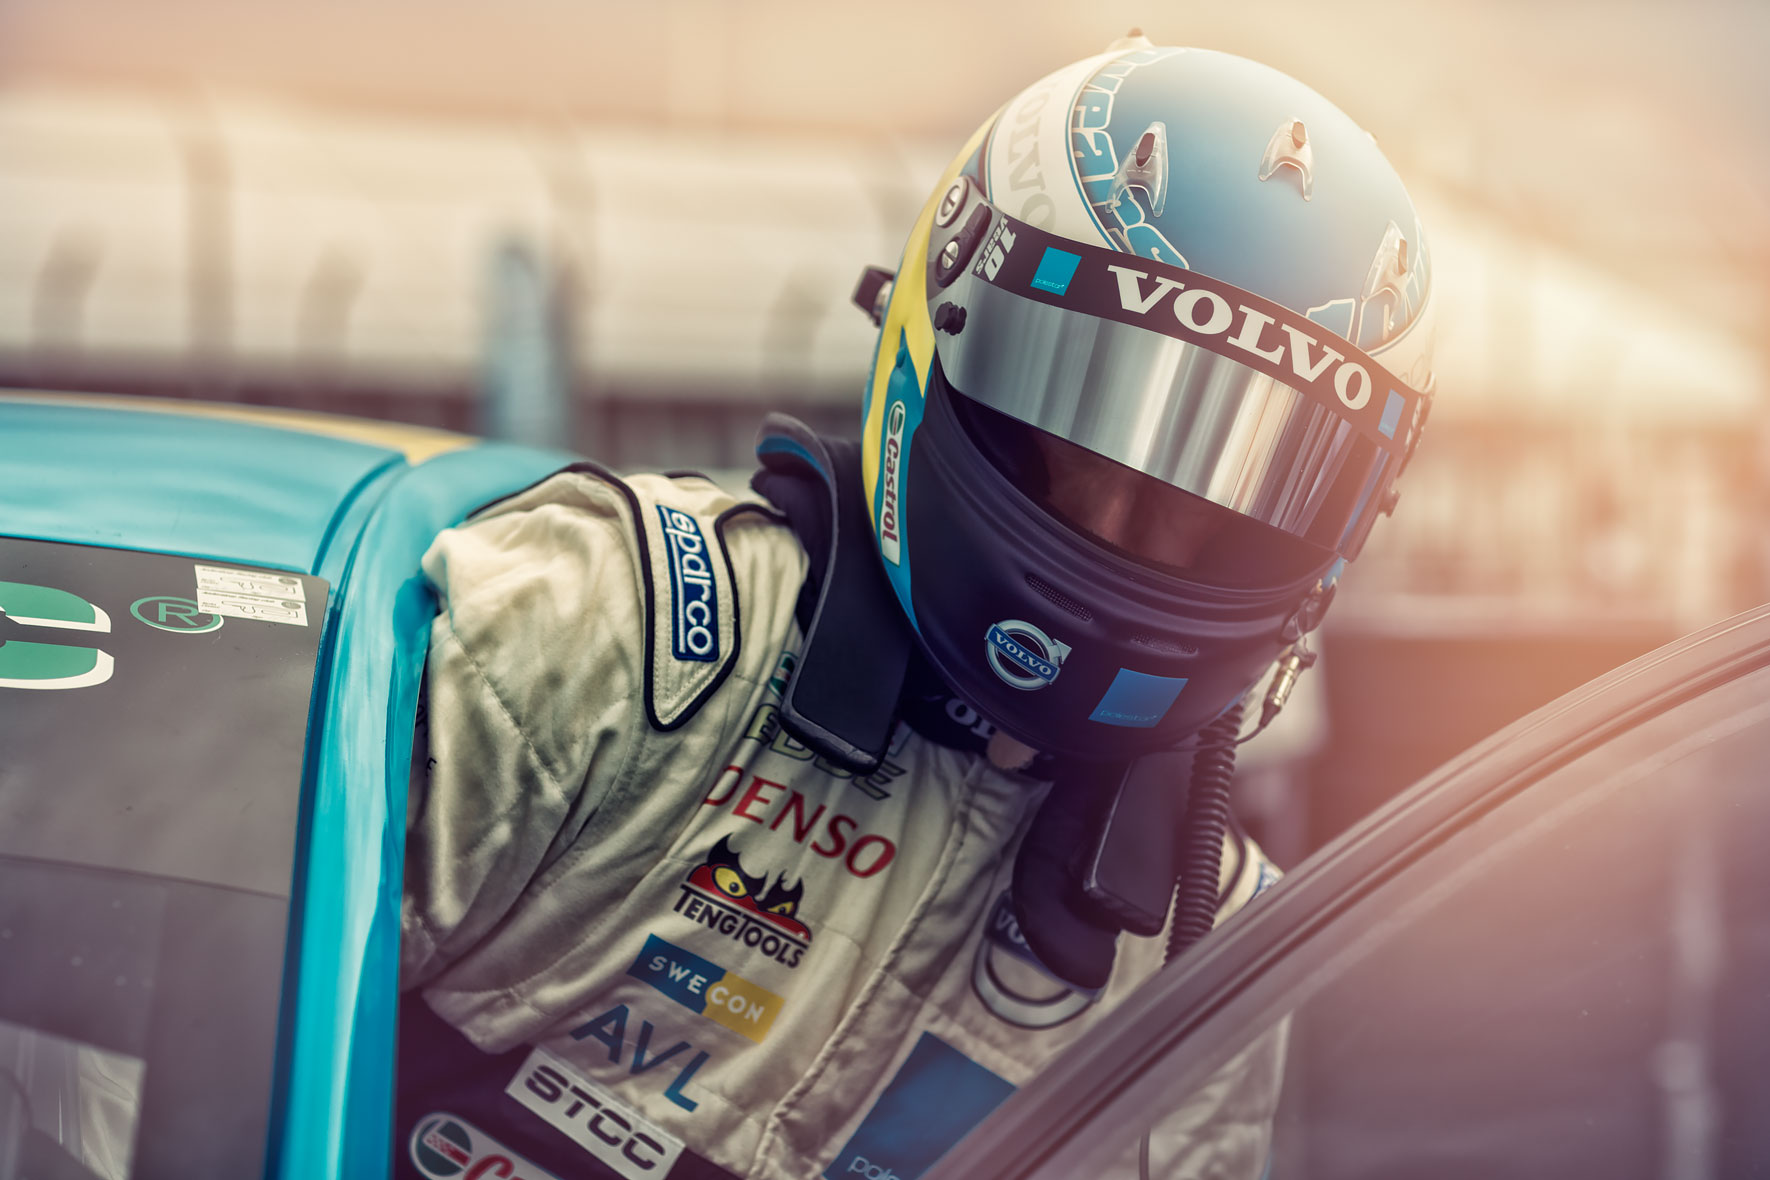 STCC_Volvo_EOS_Day_2_Raw_0498_B01_Site